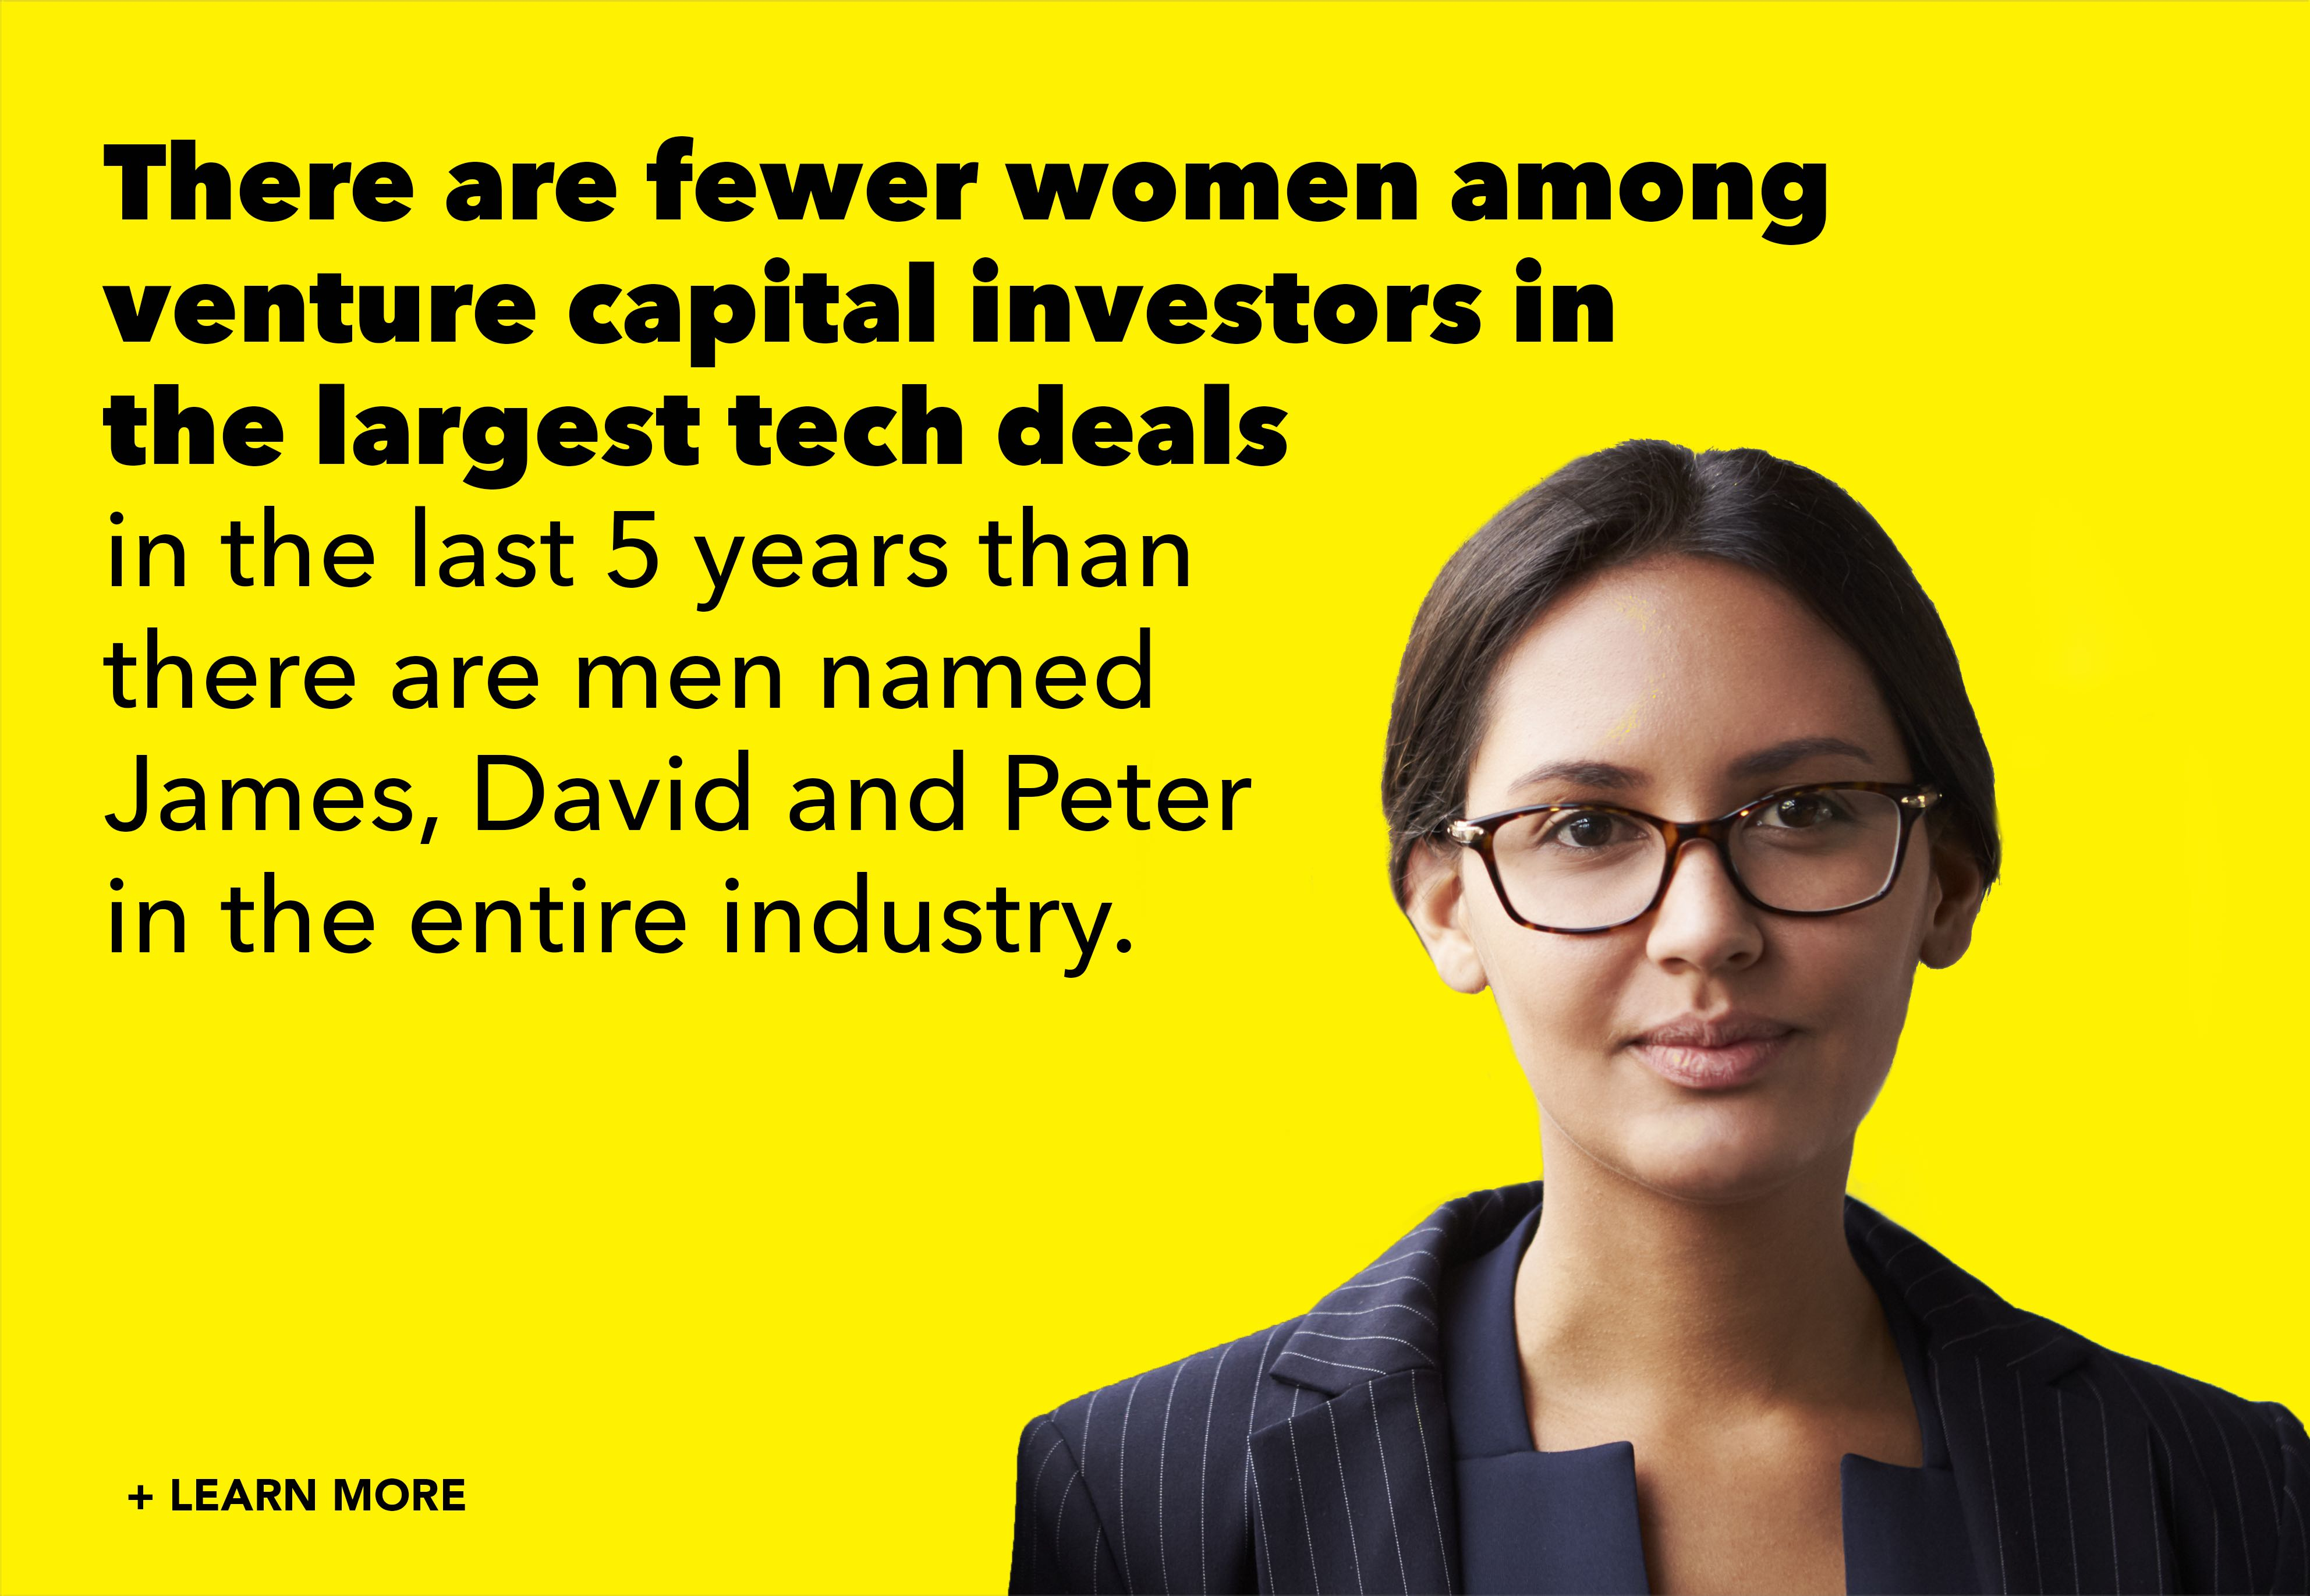 There are fewer women among venture capital investors in the largest tech deals in the last 5 years than there are men named James, David, and Peter in the entire industry.